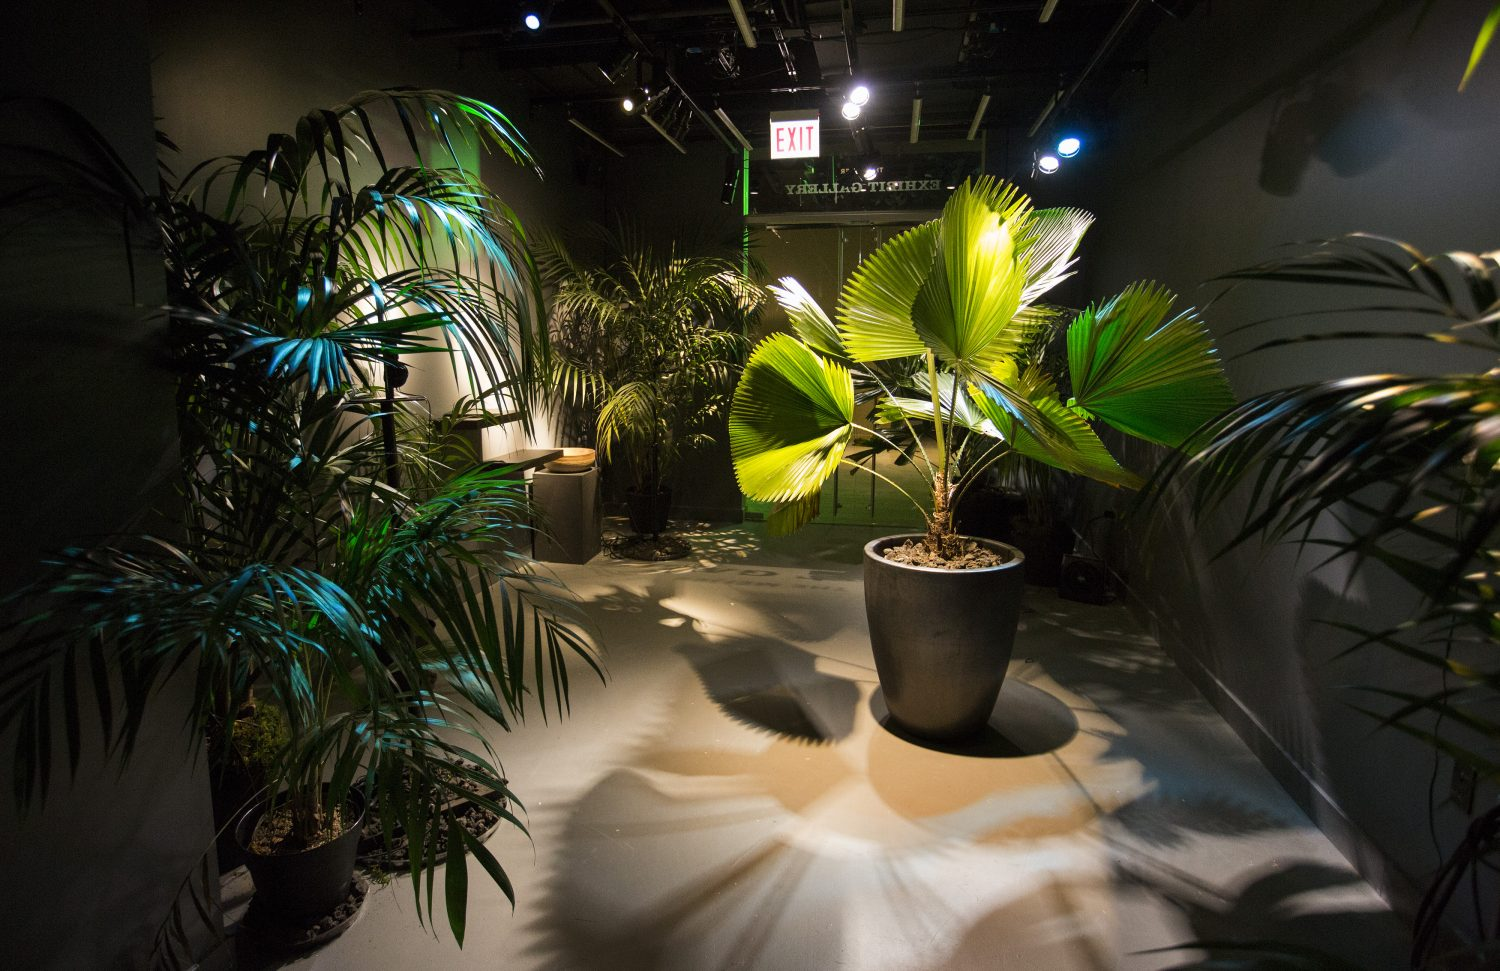 Palm: All Awake in the Darkness is an exhibition at the American Writers Museum. Image: American Writers Museum